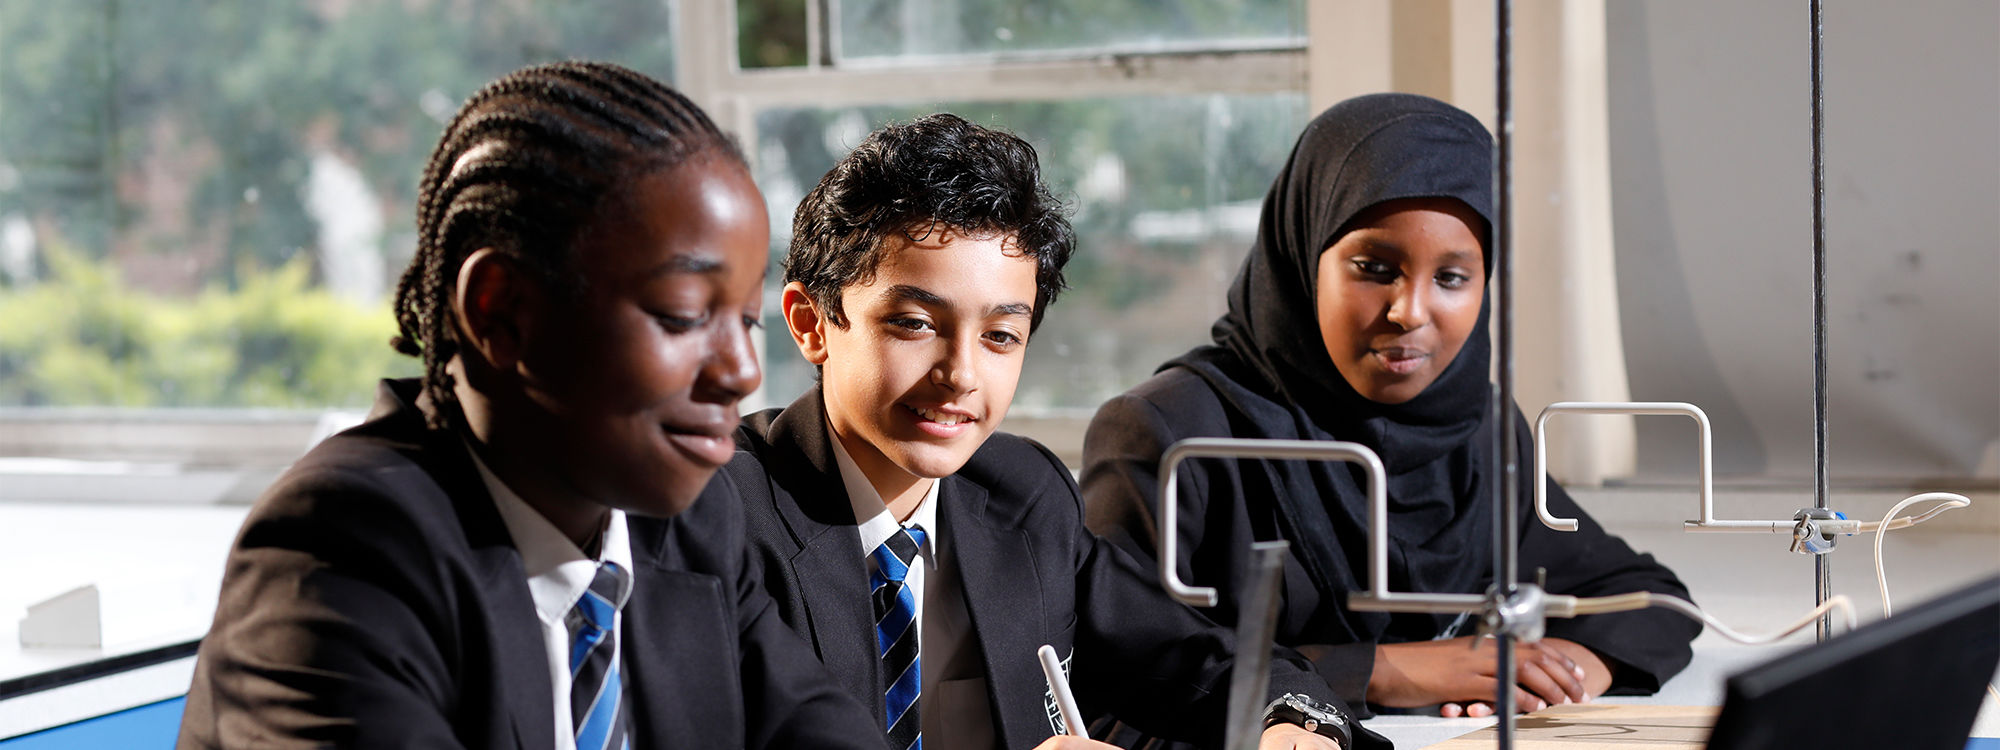 Northolt high school header image 16